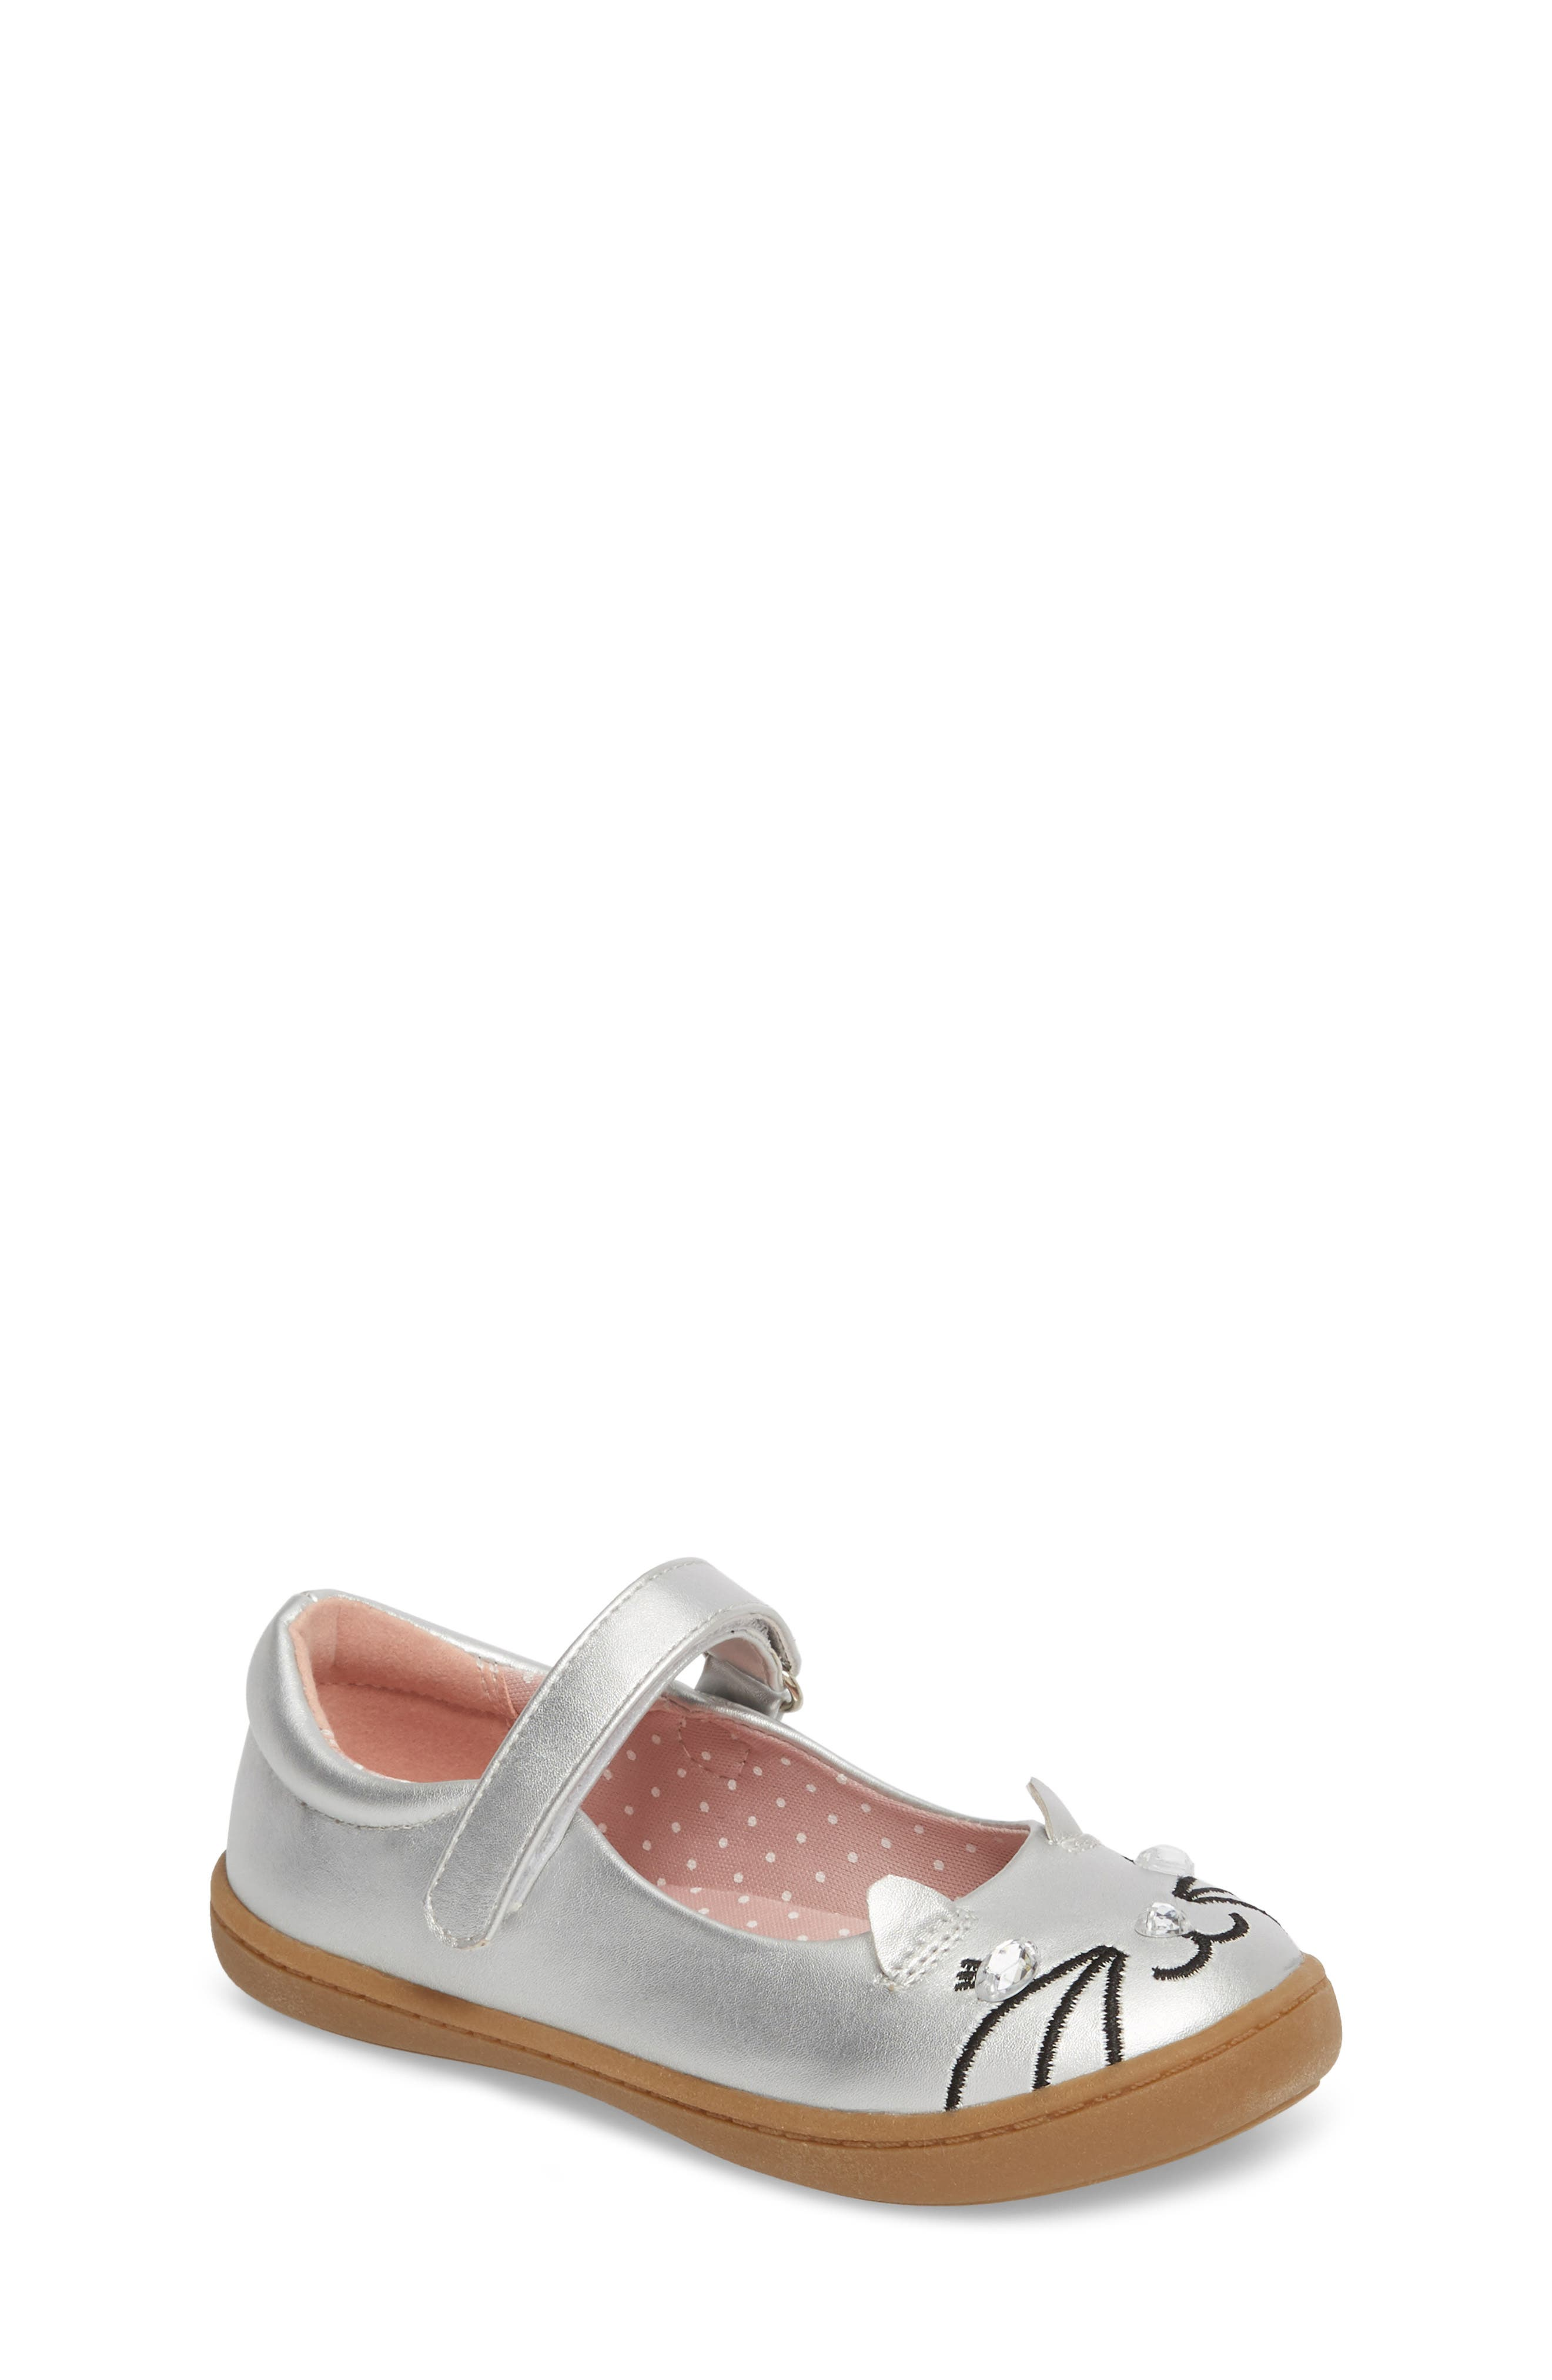 Matilda Critter Mary Jane Flat,                         Main,                         color, 040